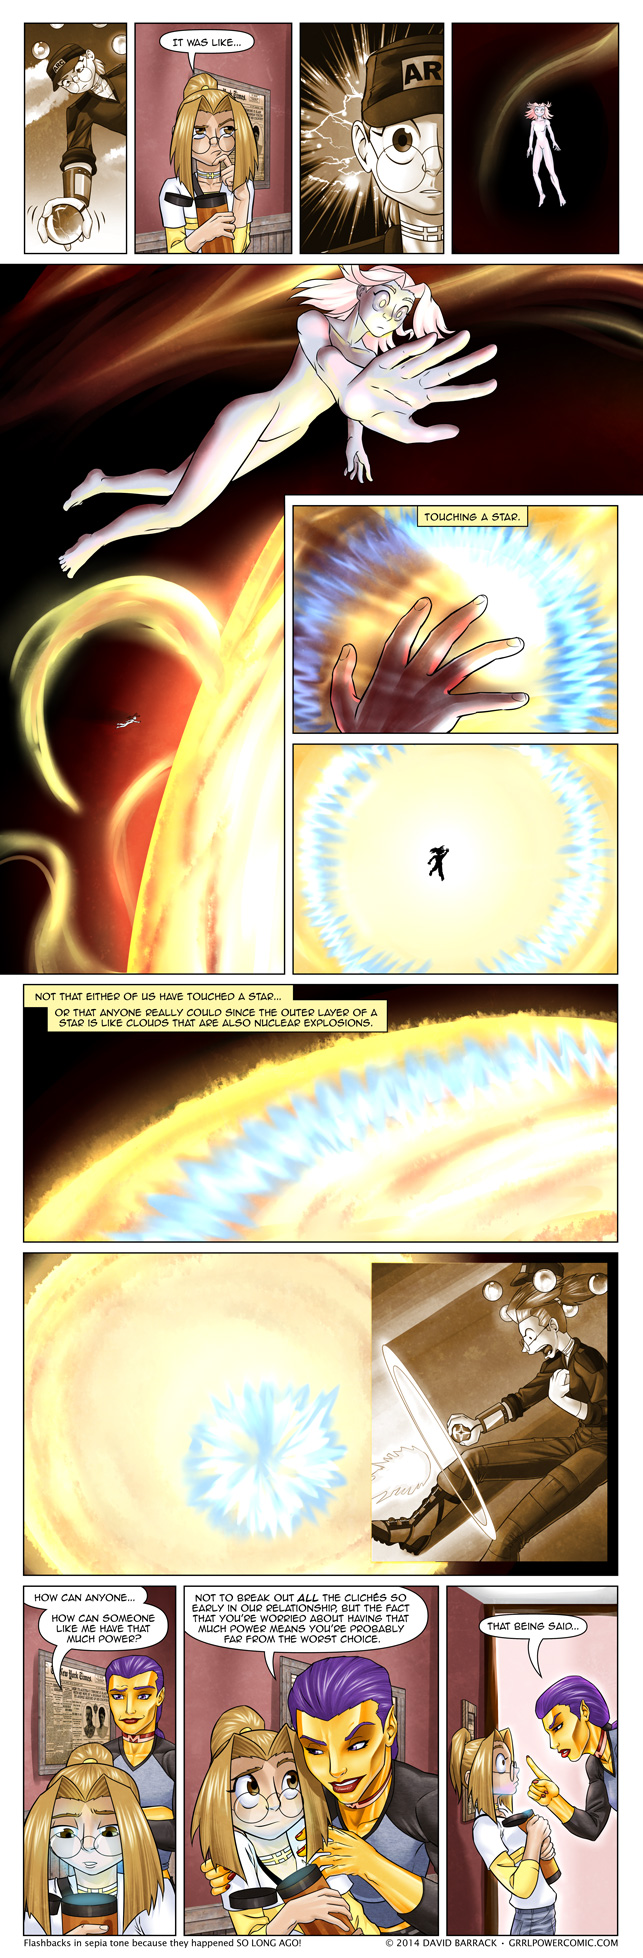 Grrl Power #192 – Touching star